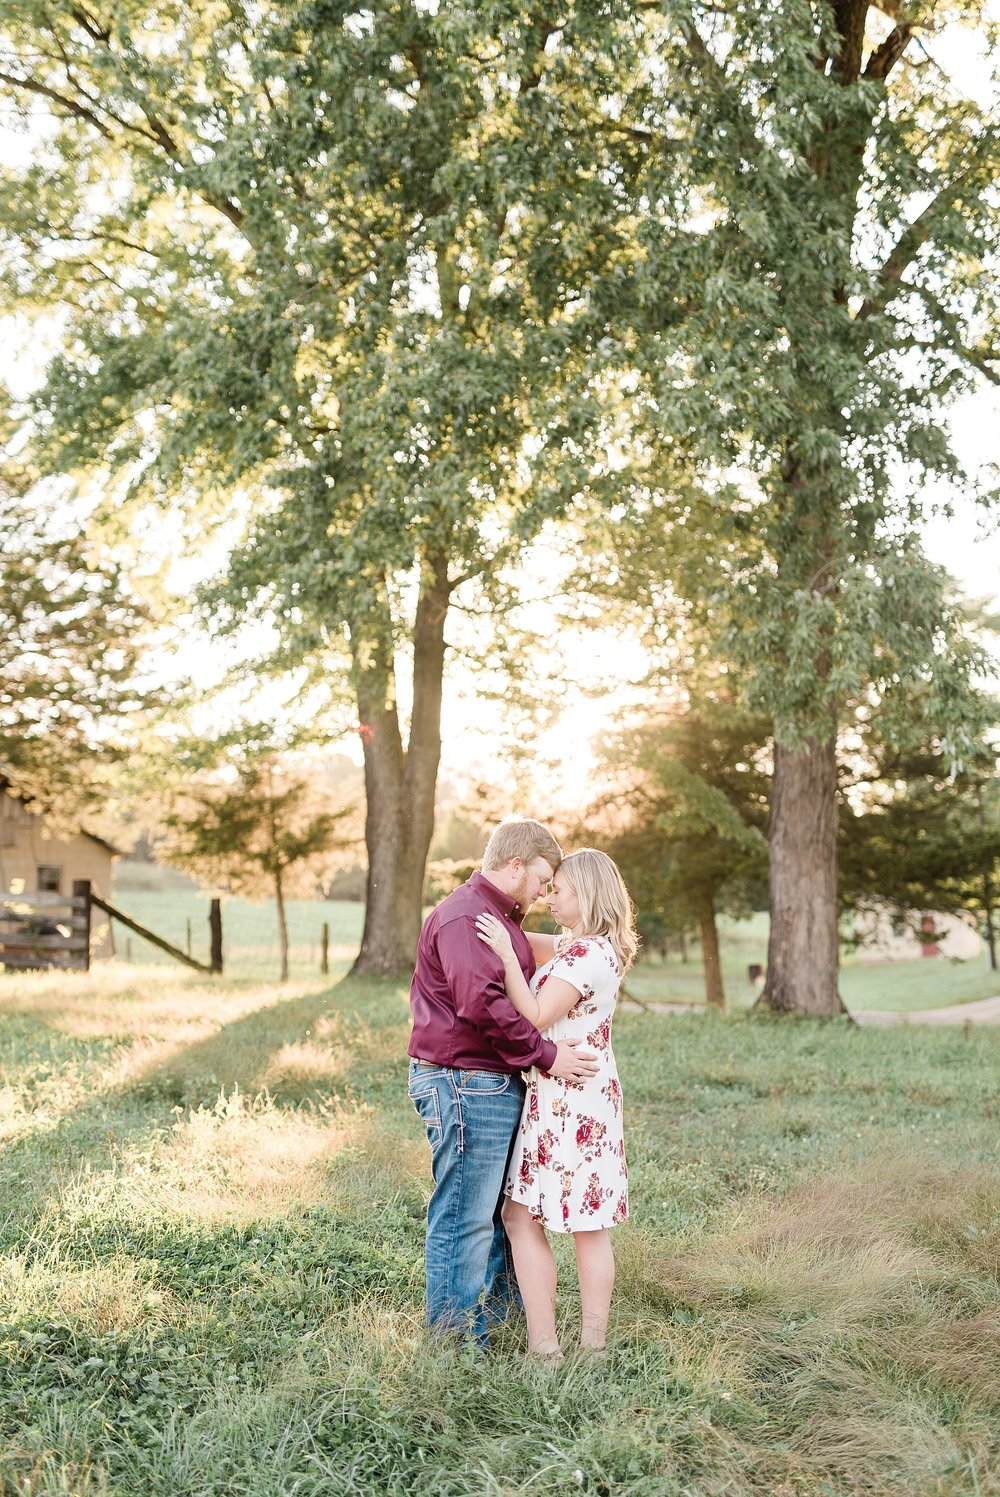 Autumn Golden Sunset Engagement Session on Farm in Missouri by Kelsi Kliethermes Photography_0006.jpg